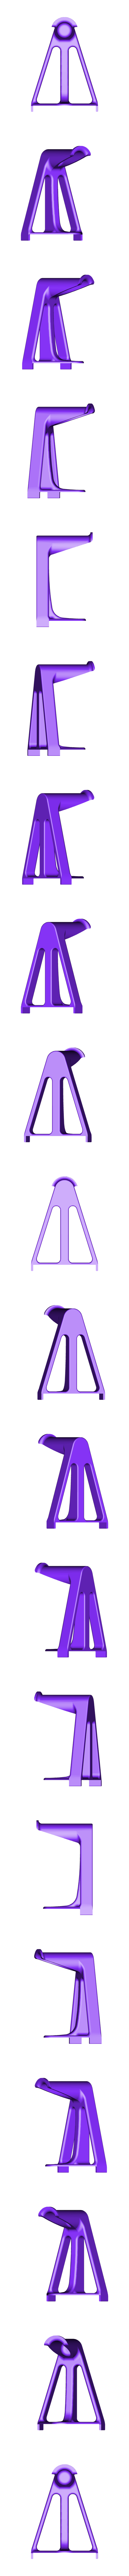 TEVO_Tornado_Filament_Holder.STL Download free STL file TEVO Tornado Filament Holder • 3D printable model, 3D_Cre8or